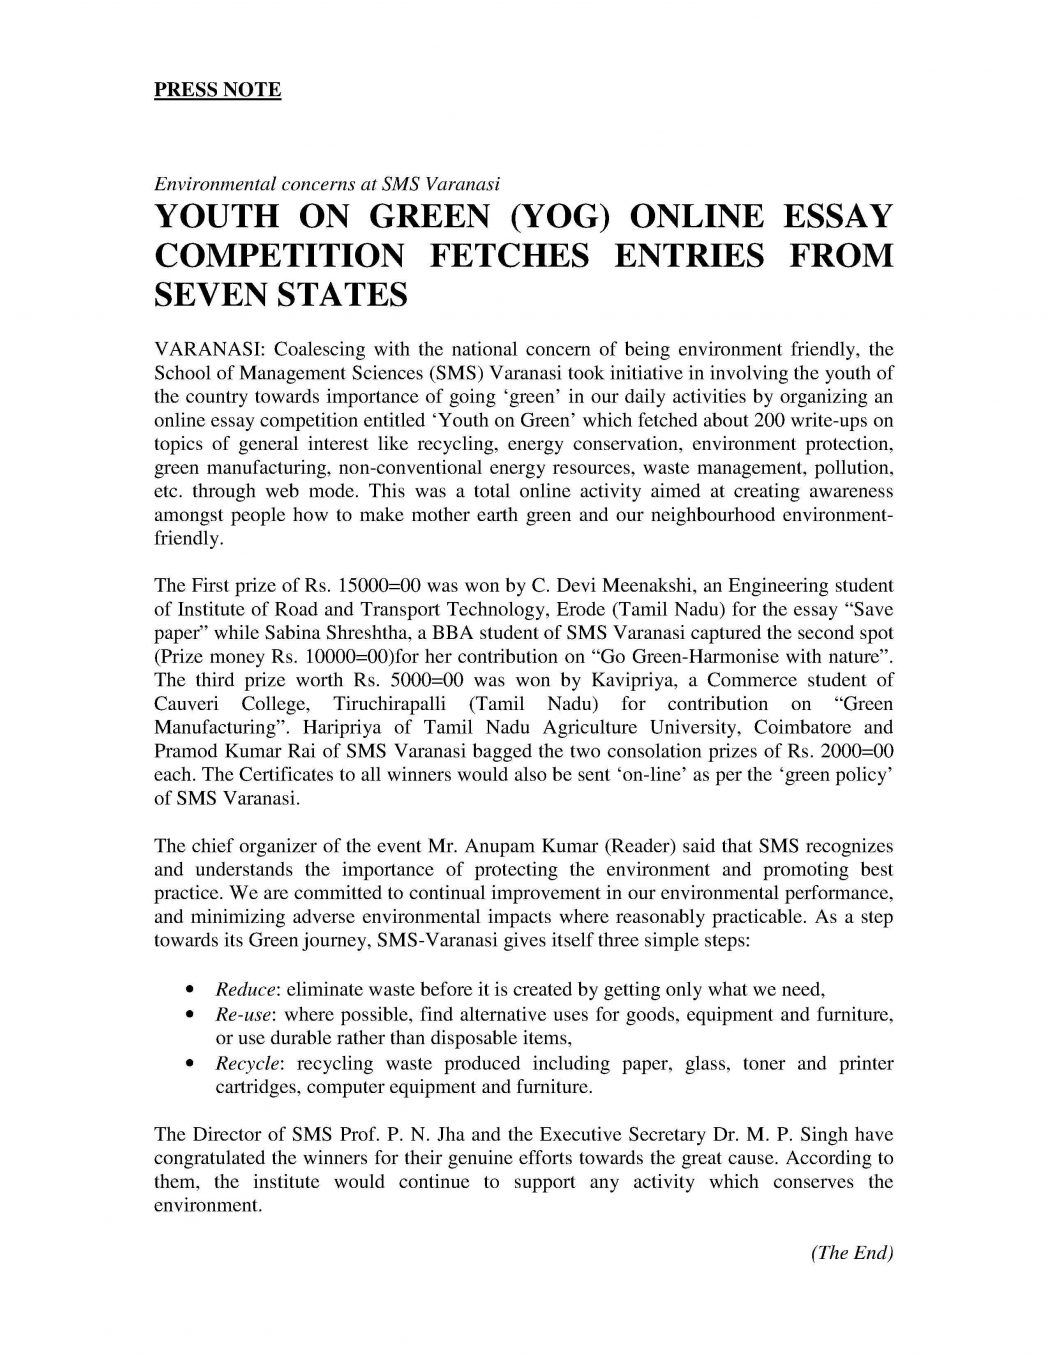 008 Healthy Food Essay Essays Eating Organizations Online Yog Press Re Block 1048x1356 Best For Grade 3 Habits In Hindi Wikipedia Full